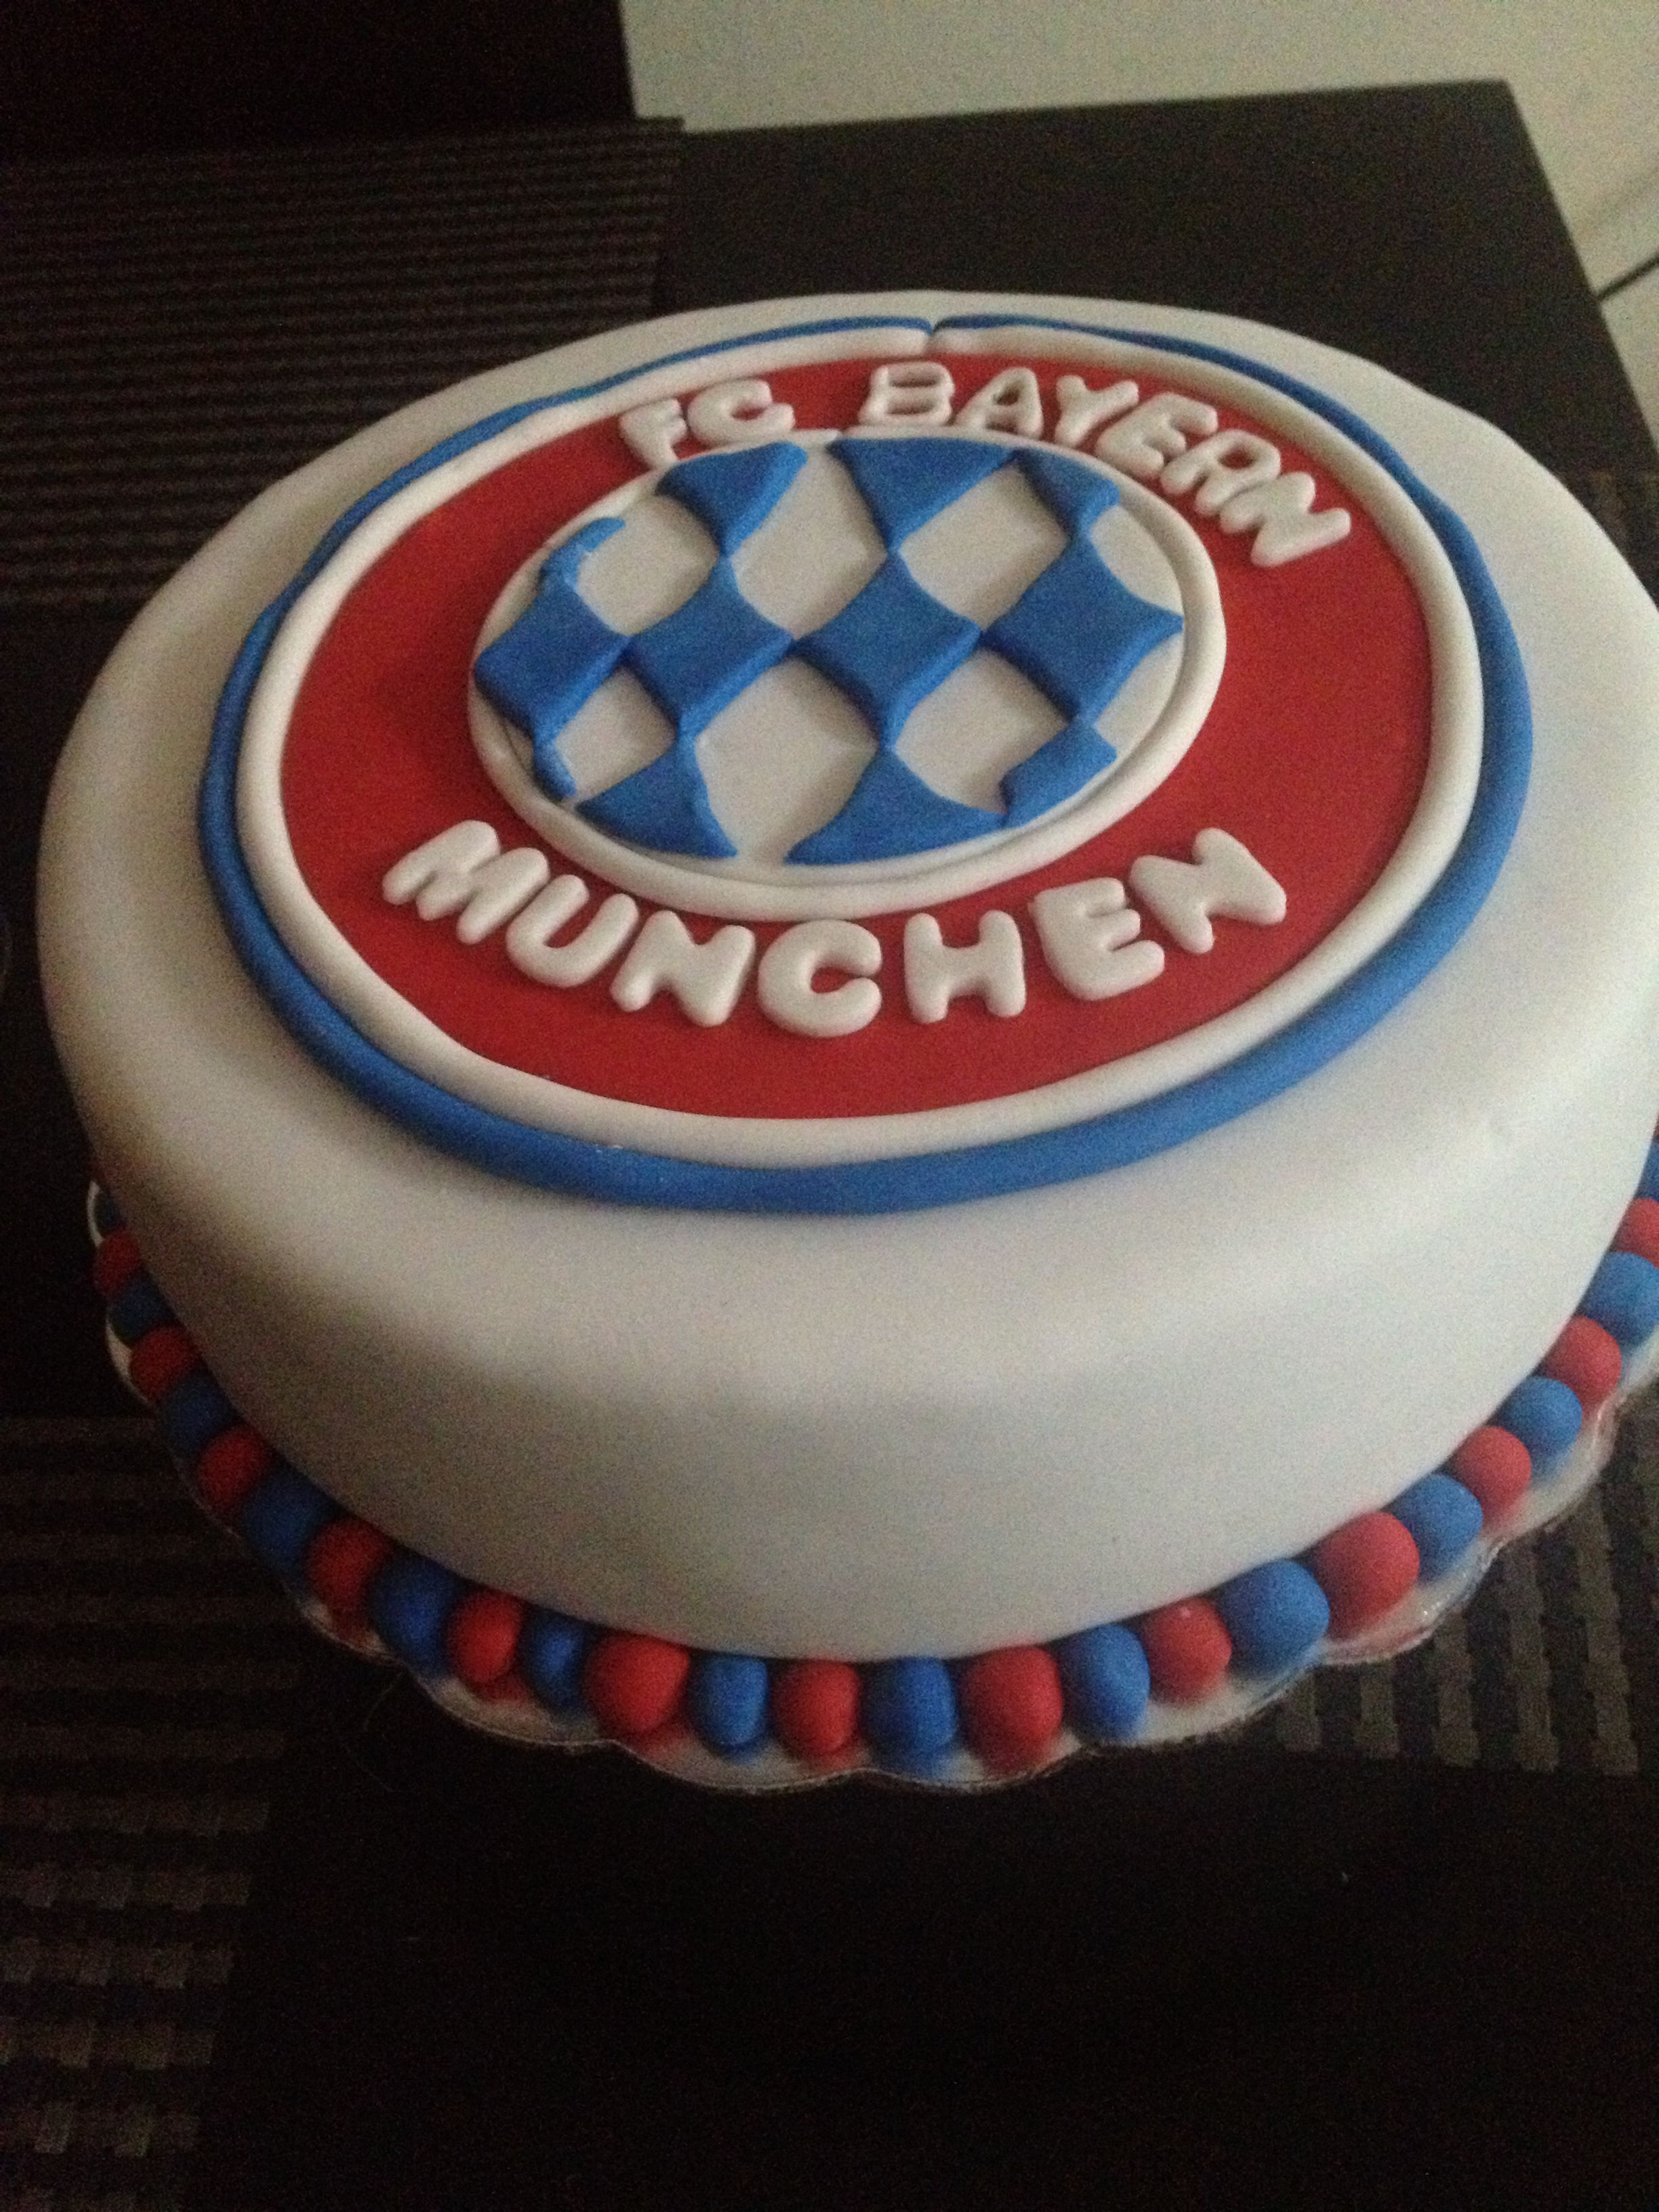 Bayern Munich Cake Littlebitesbyinge Cakes In 2018 Pinterest